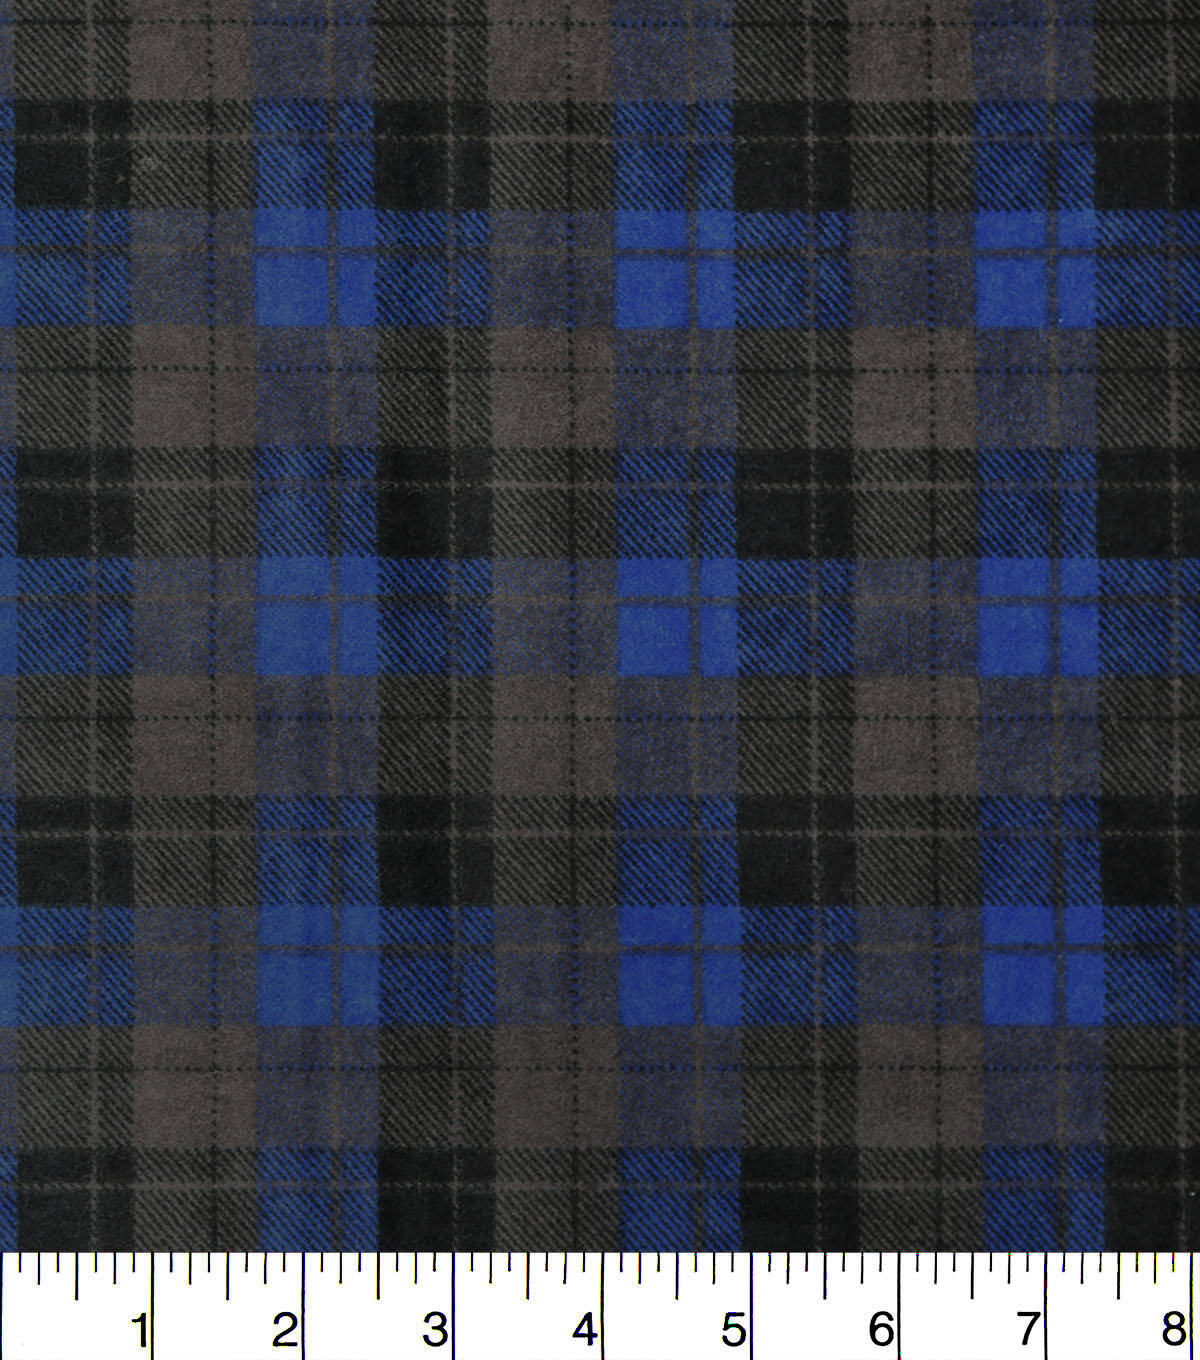 Snuggle Flannel Fabric -Skylar Blue Black Plaid